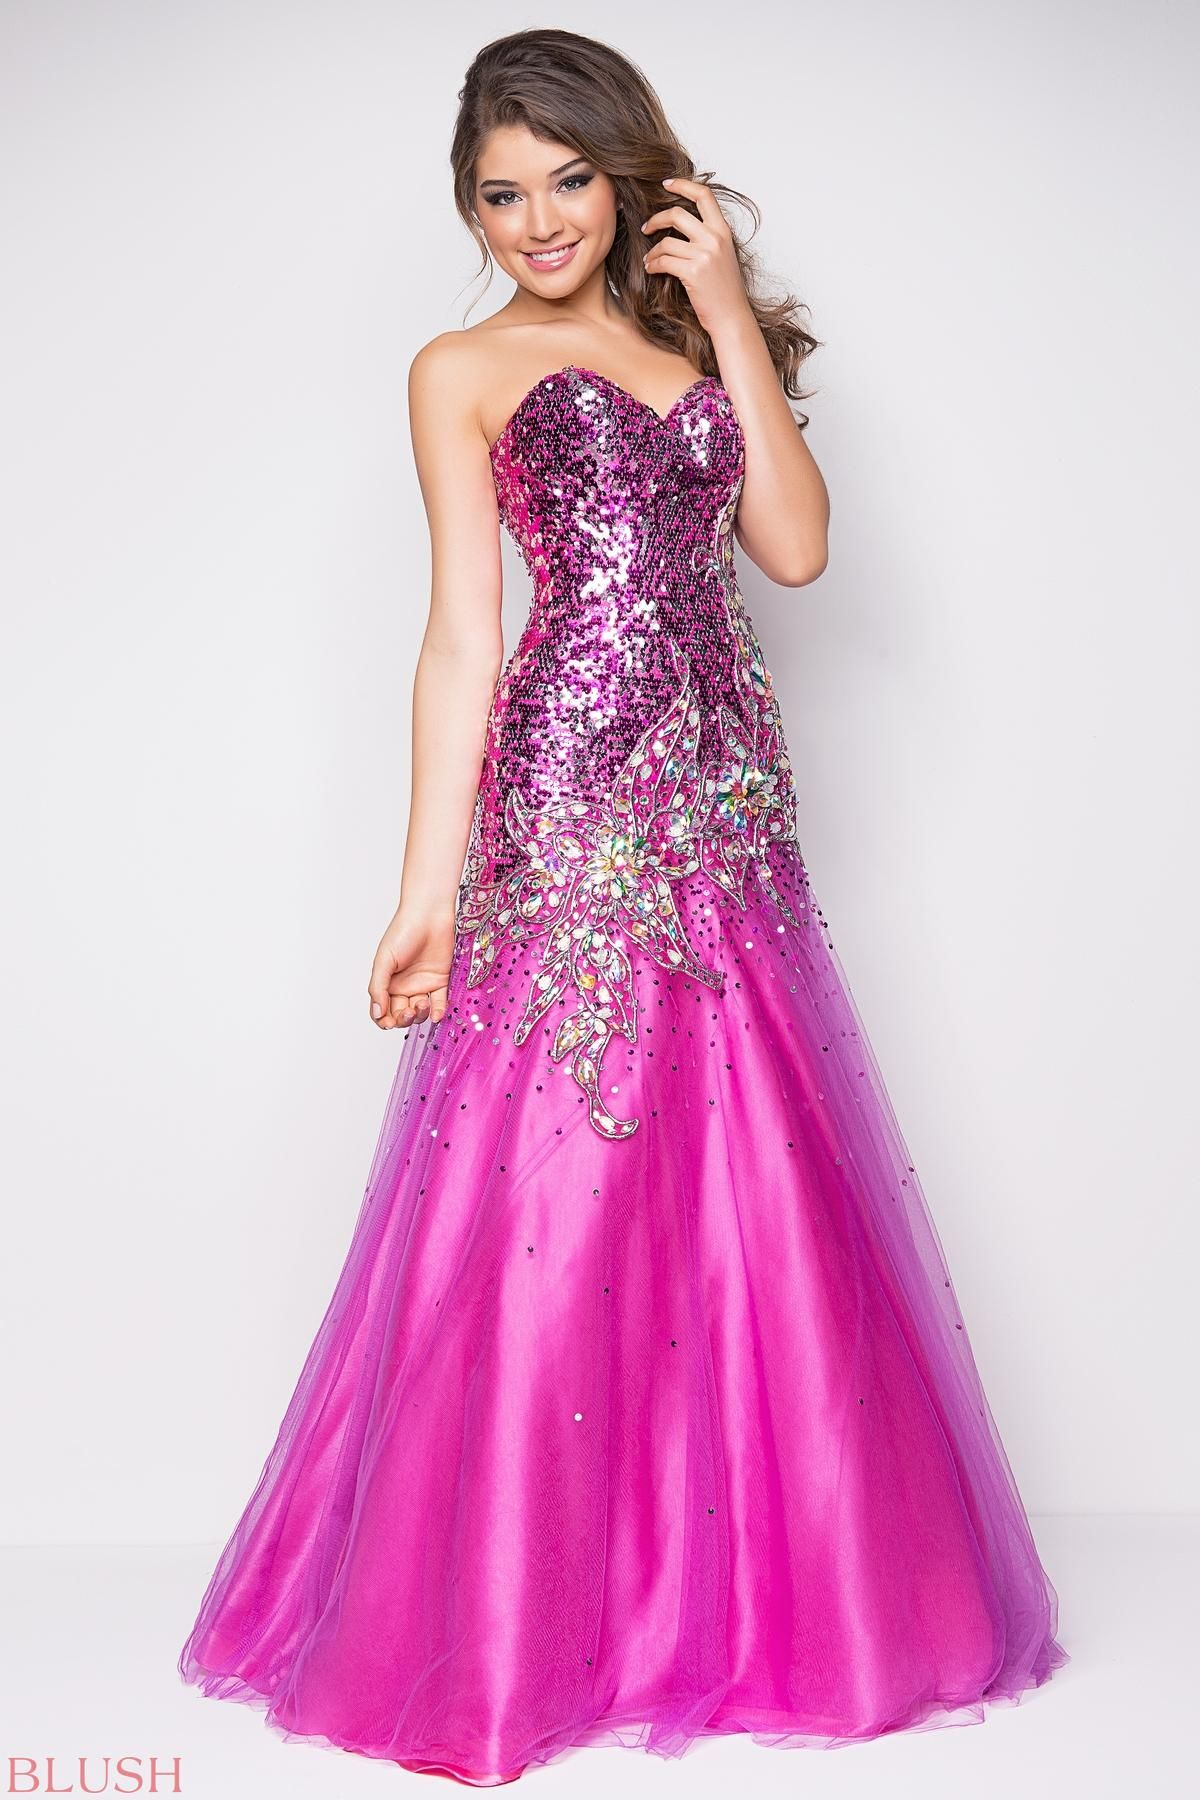 Formal prom dress in dramatic beads! Jeweled stones drape into a ...